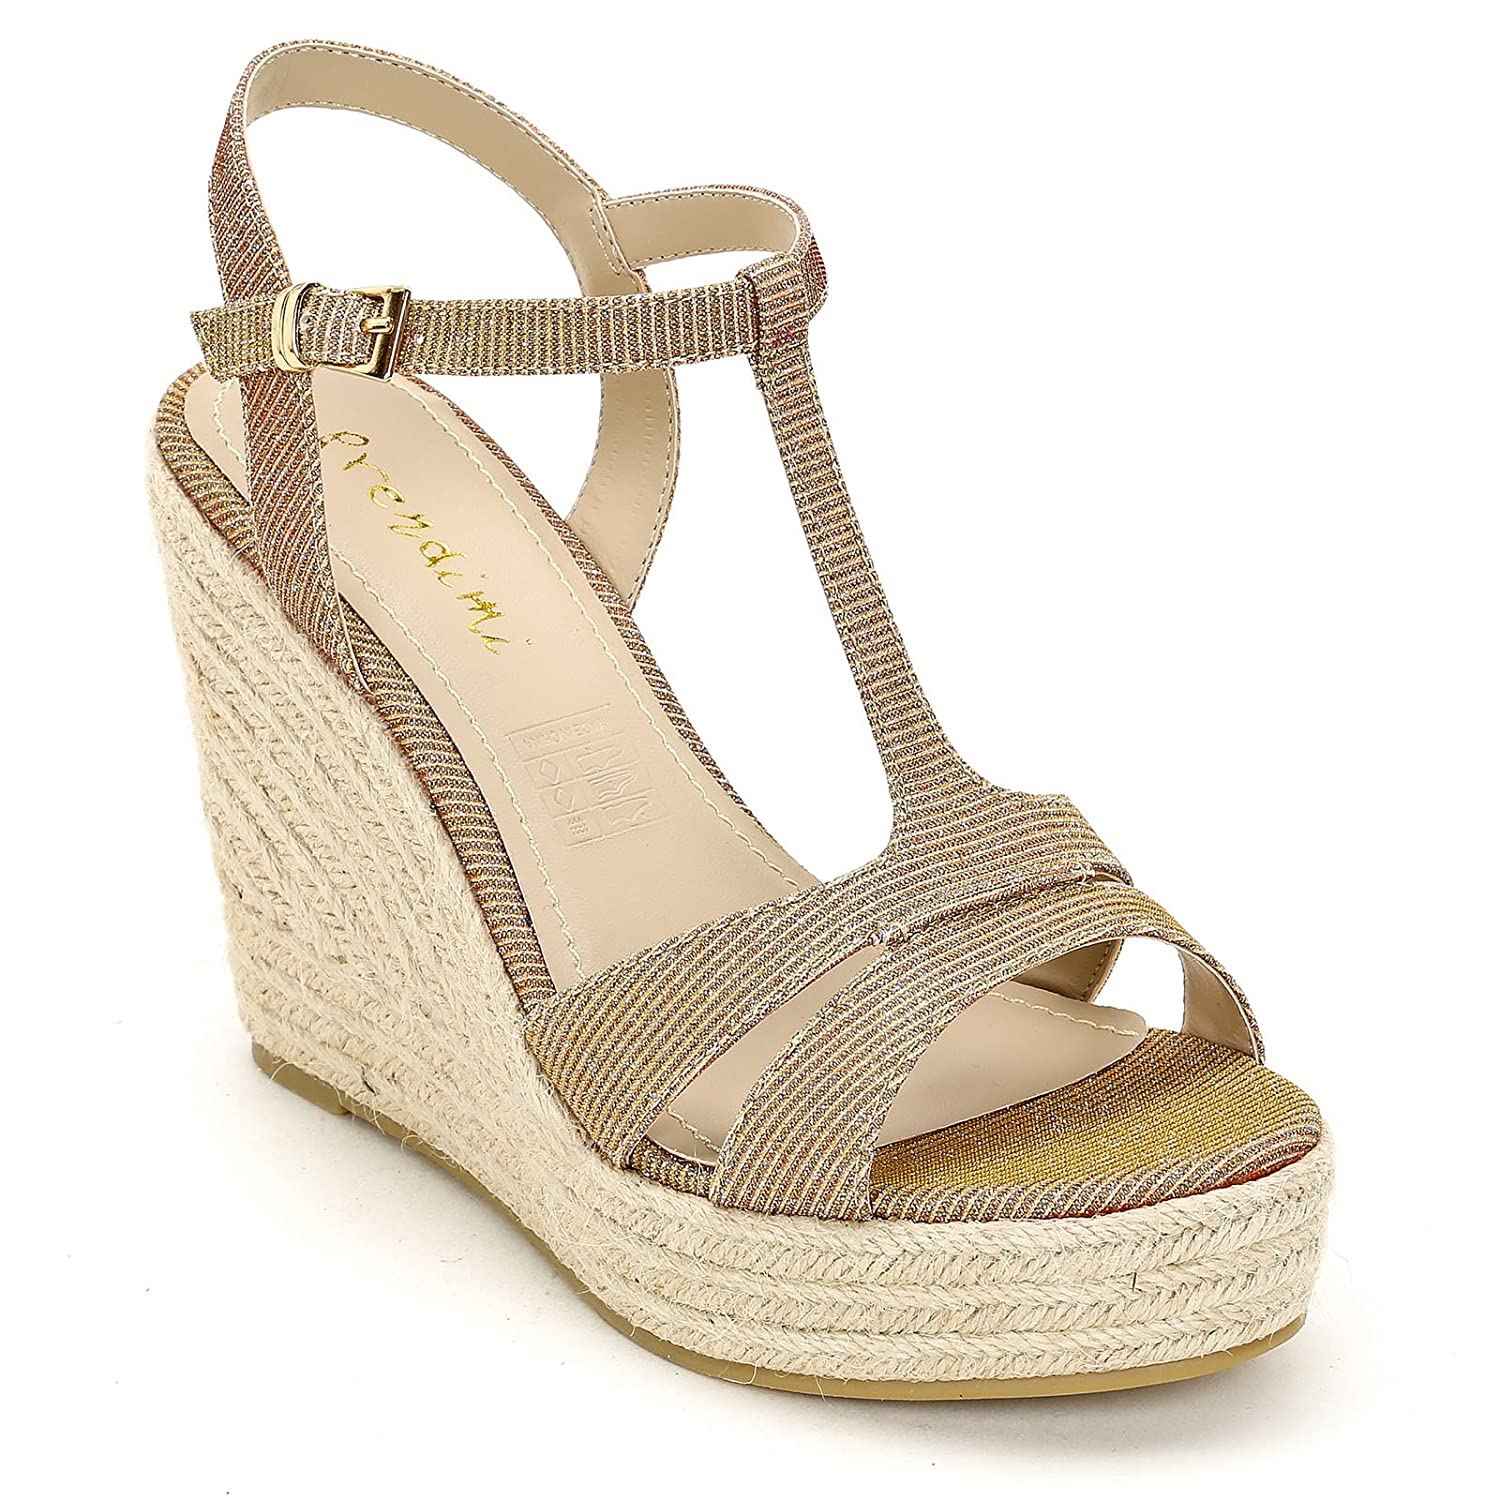 Obsel: B007CFPT98 Scarpe&Scarpe - - Obsel: Zeppe Donna Doré 0aace40 - therethere.space